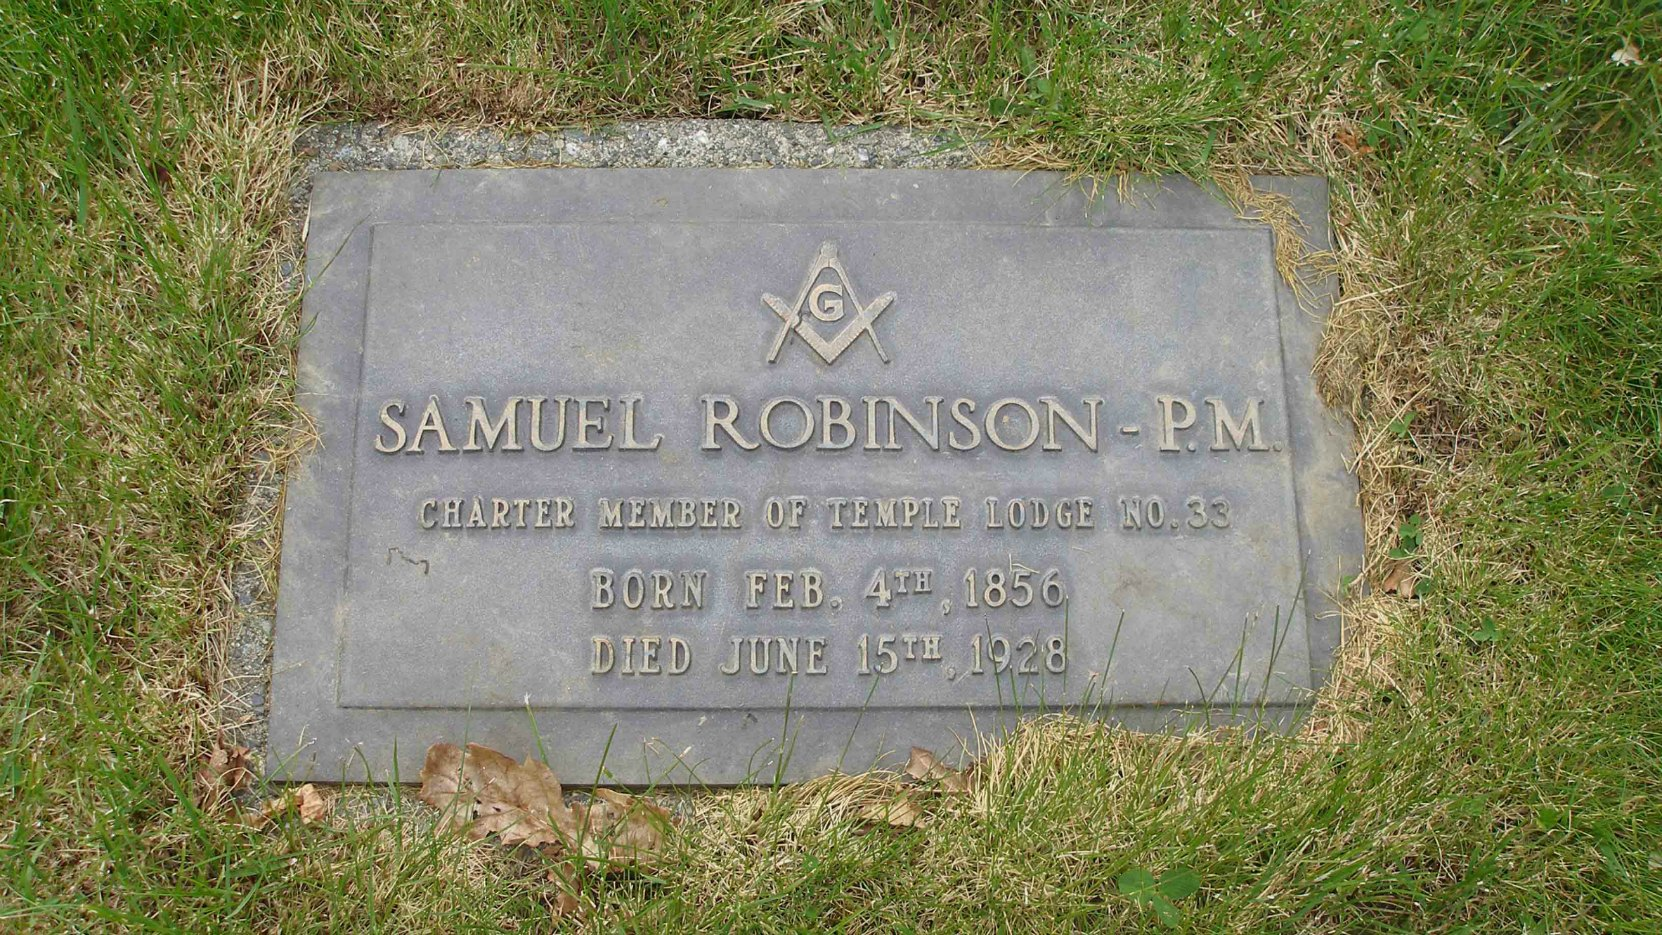 Samuel Robinson grave marker, St. Mary's Somenos Anglican Cemetery, North Cowichan, B.C.